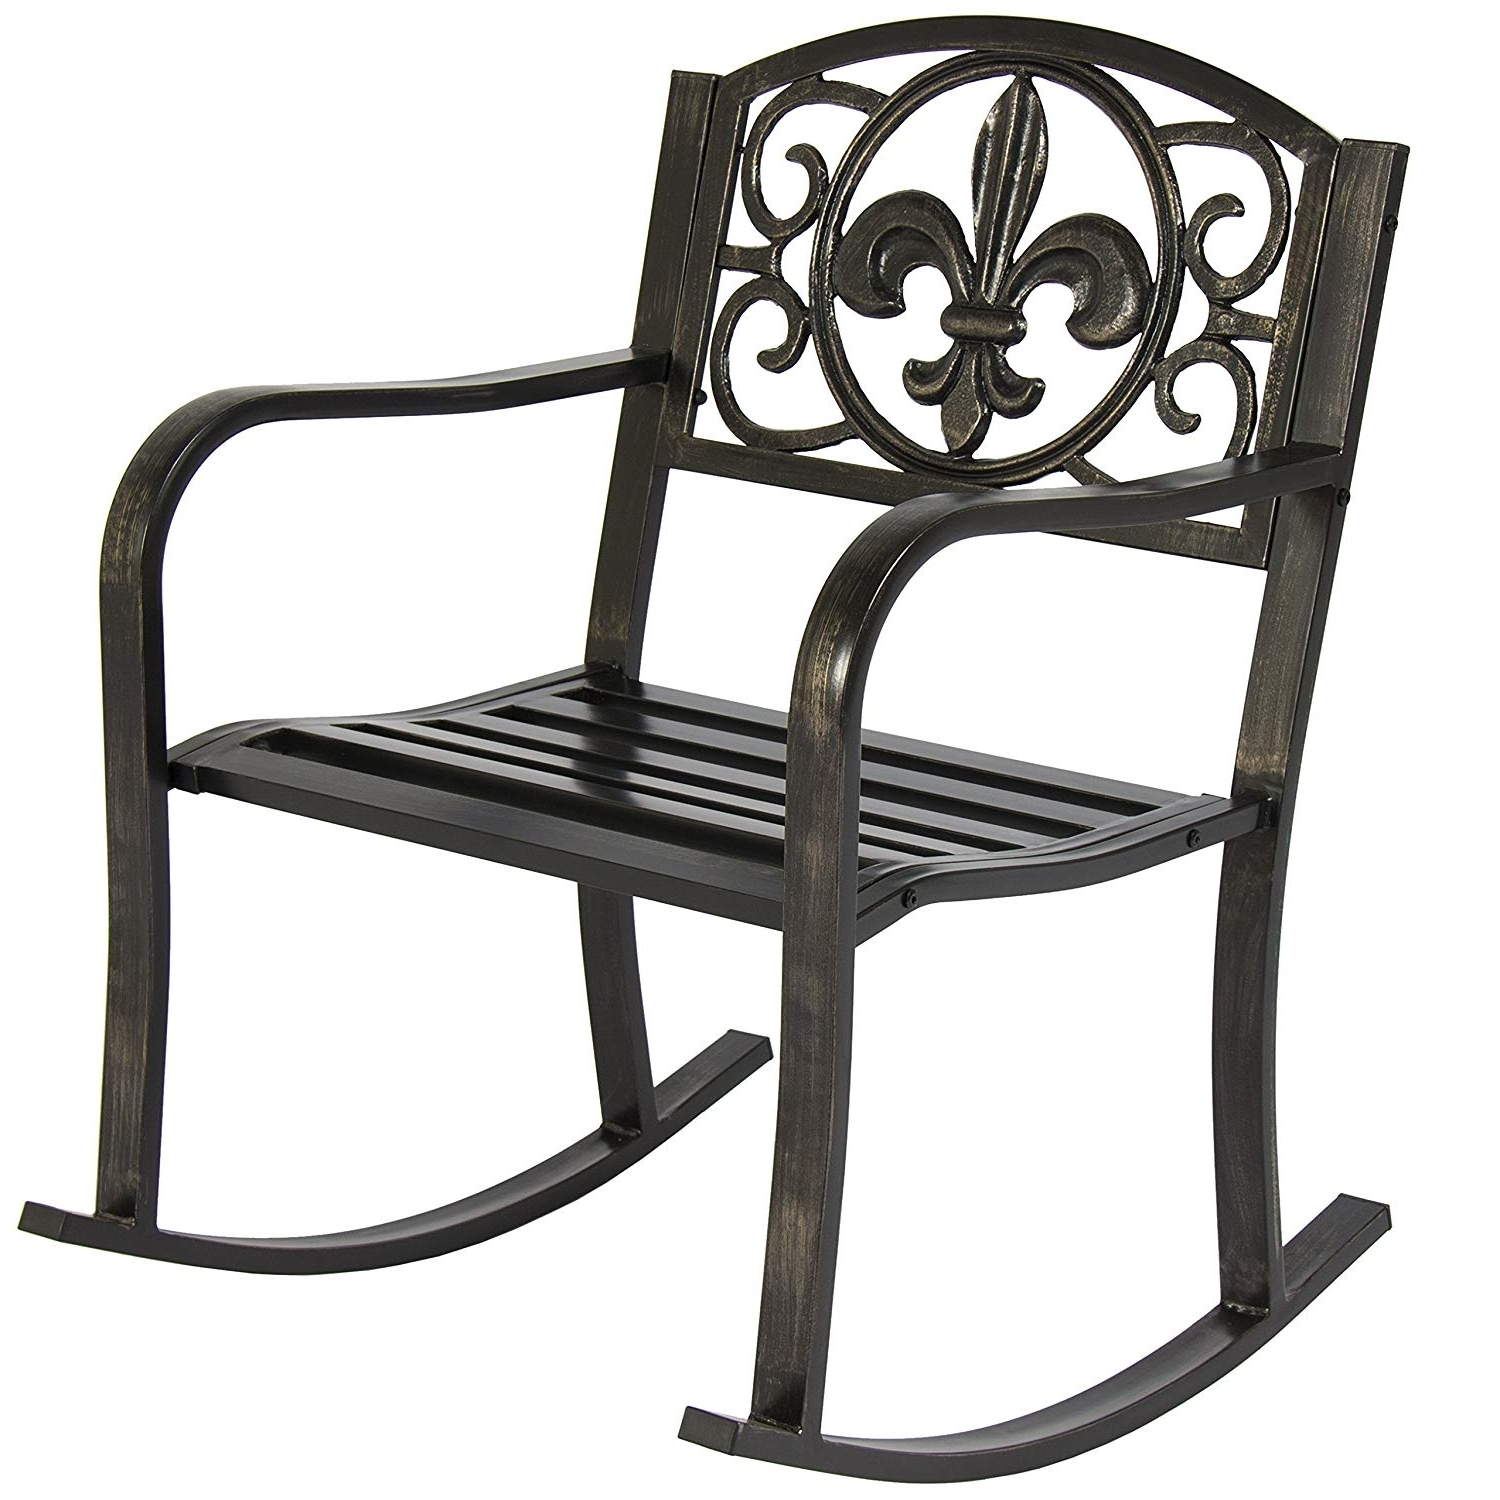 Best And Newest Iron Rocking Patio Chairs With Regard To Amazon : Best Choice Products Metal Rocking Chair Seat For Patio (View 12 of 15)